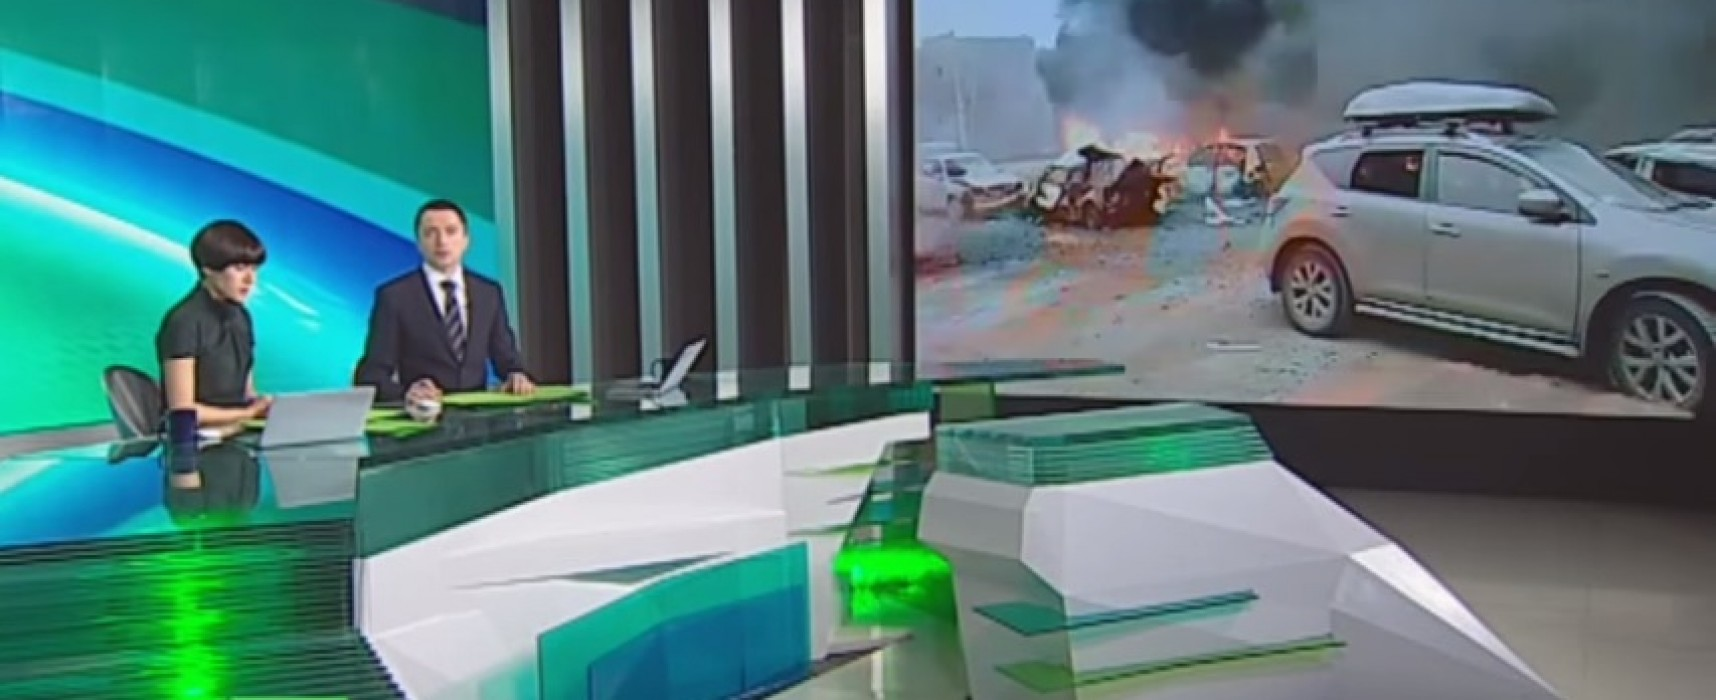 NTV Channel Presented Old Video from Mariupol as the Latest News about Shelling of Donetsk